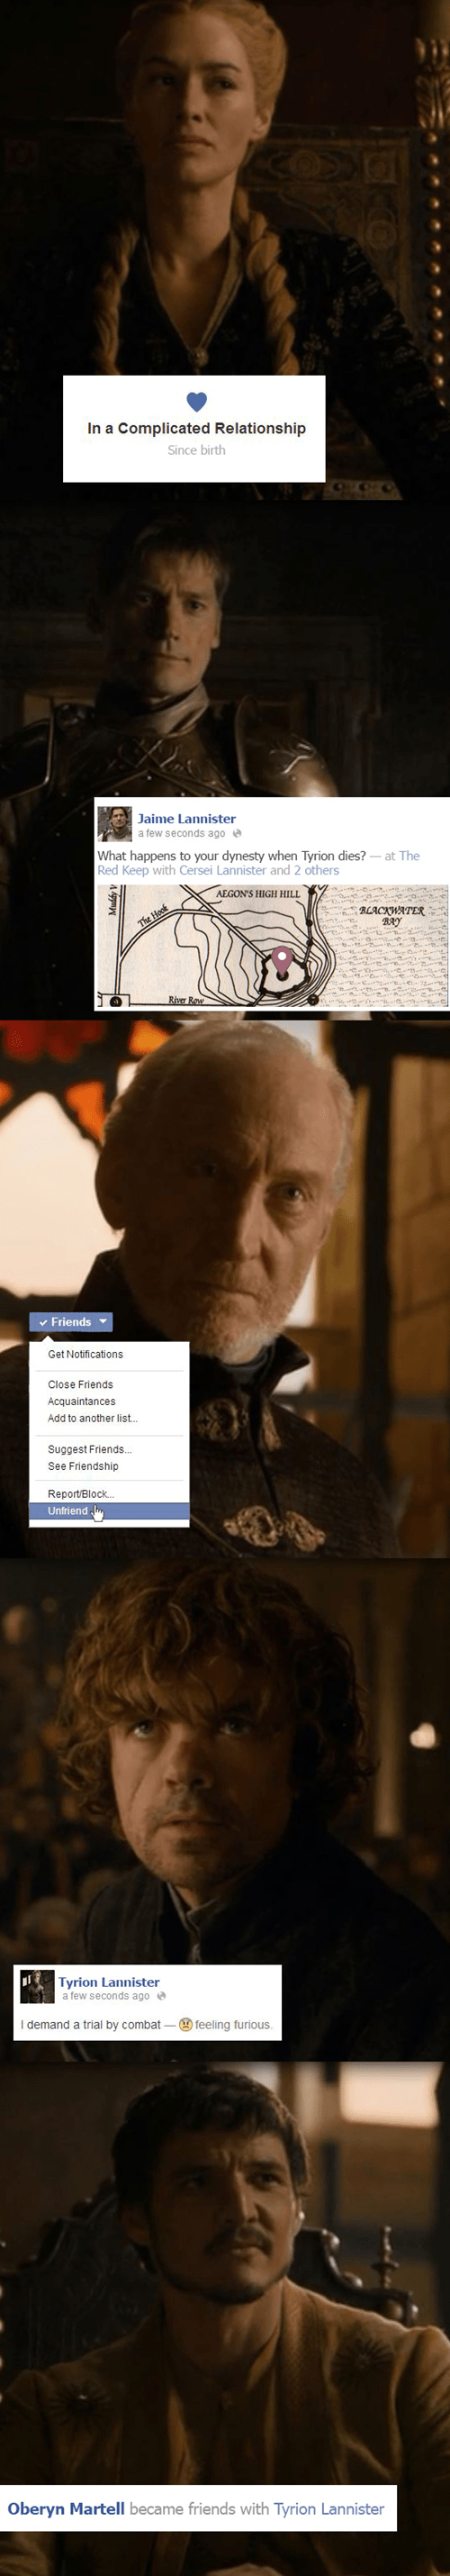 Game of Thrones,facebook,season 4